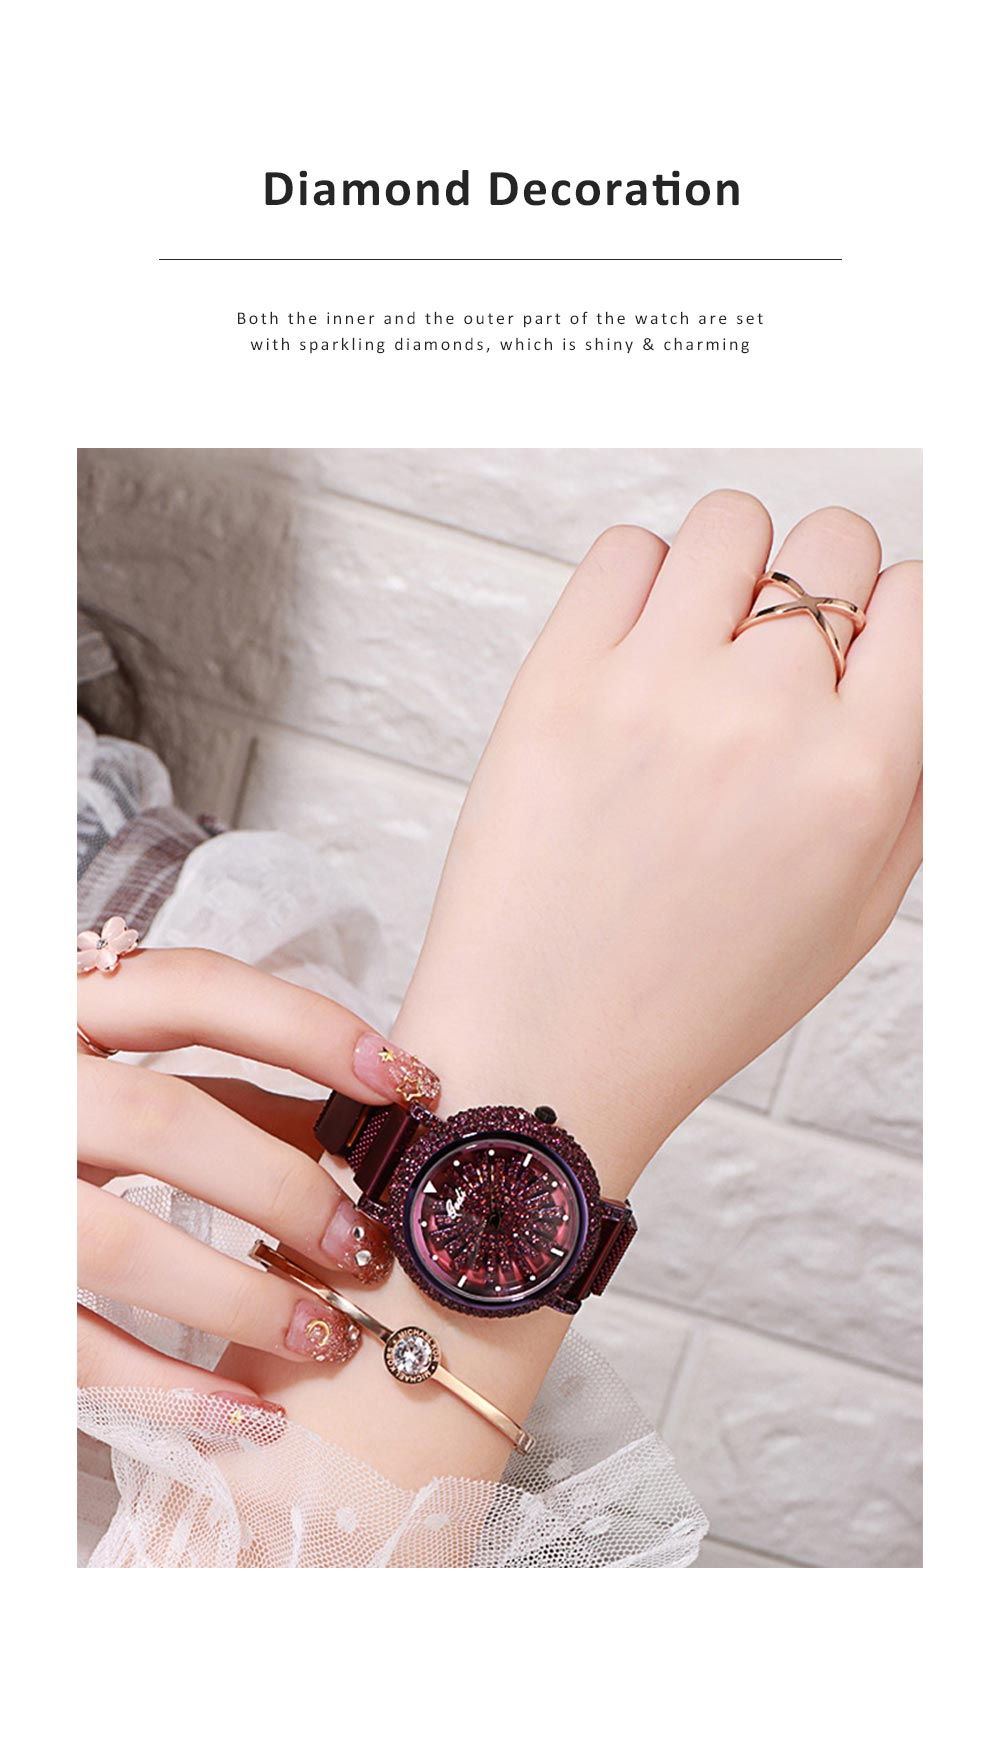 Stylish Quartz Watch with Large Glass Dial Diamond Mounted Watch 360 Degree Rotation Milanese Mesh Strap Wristwatch for Women 1